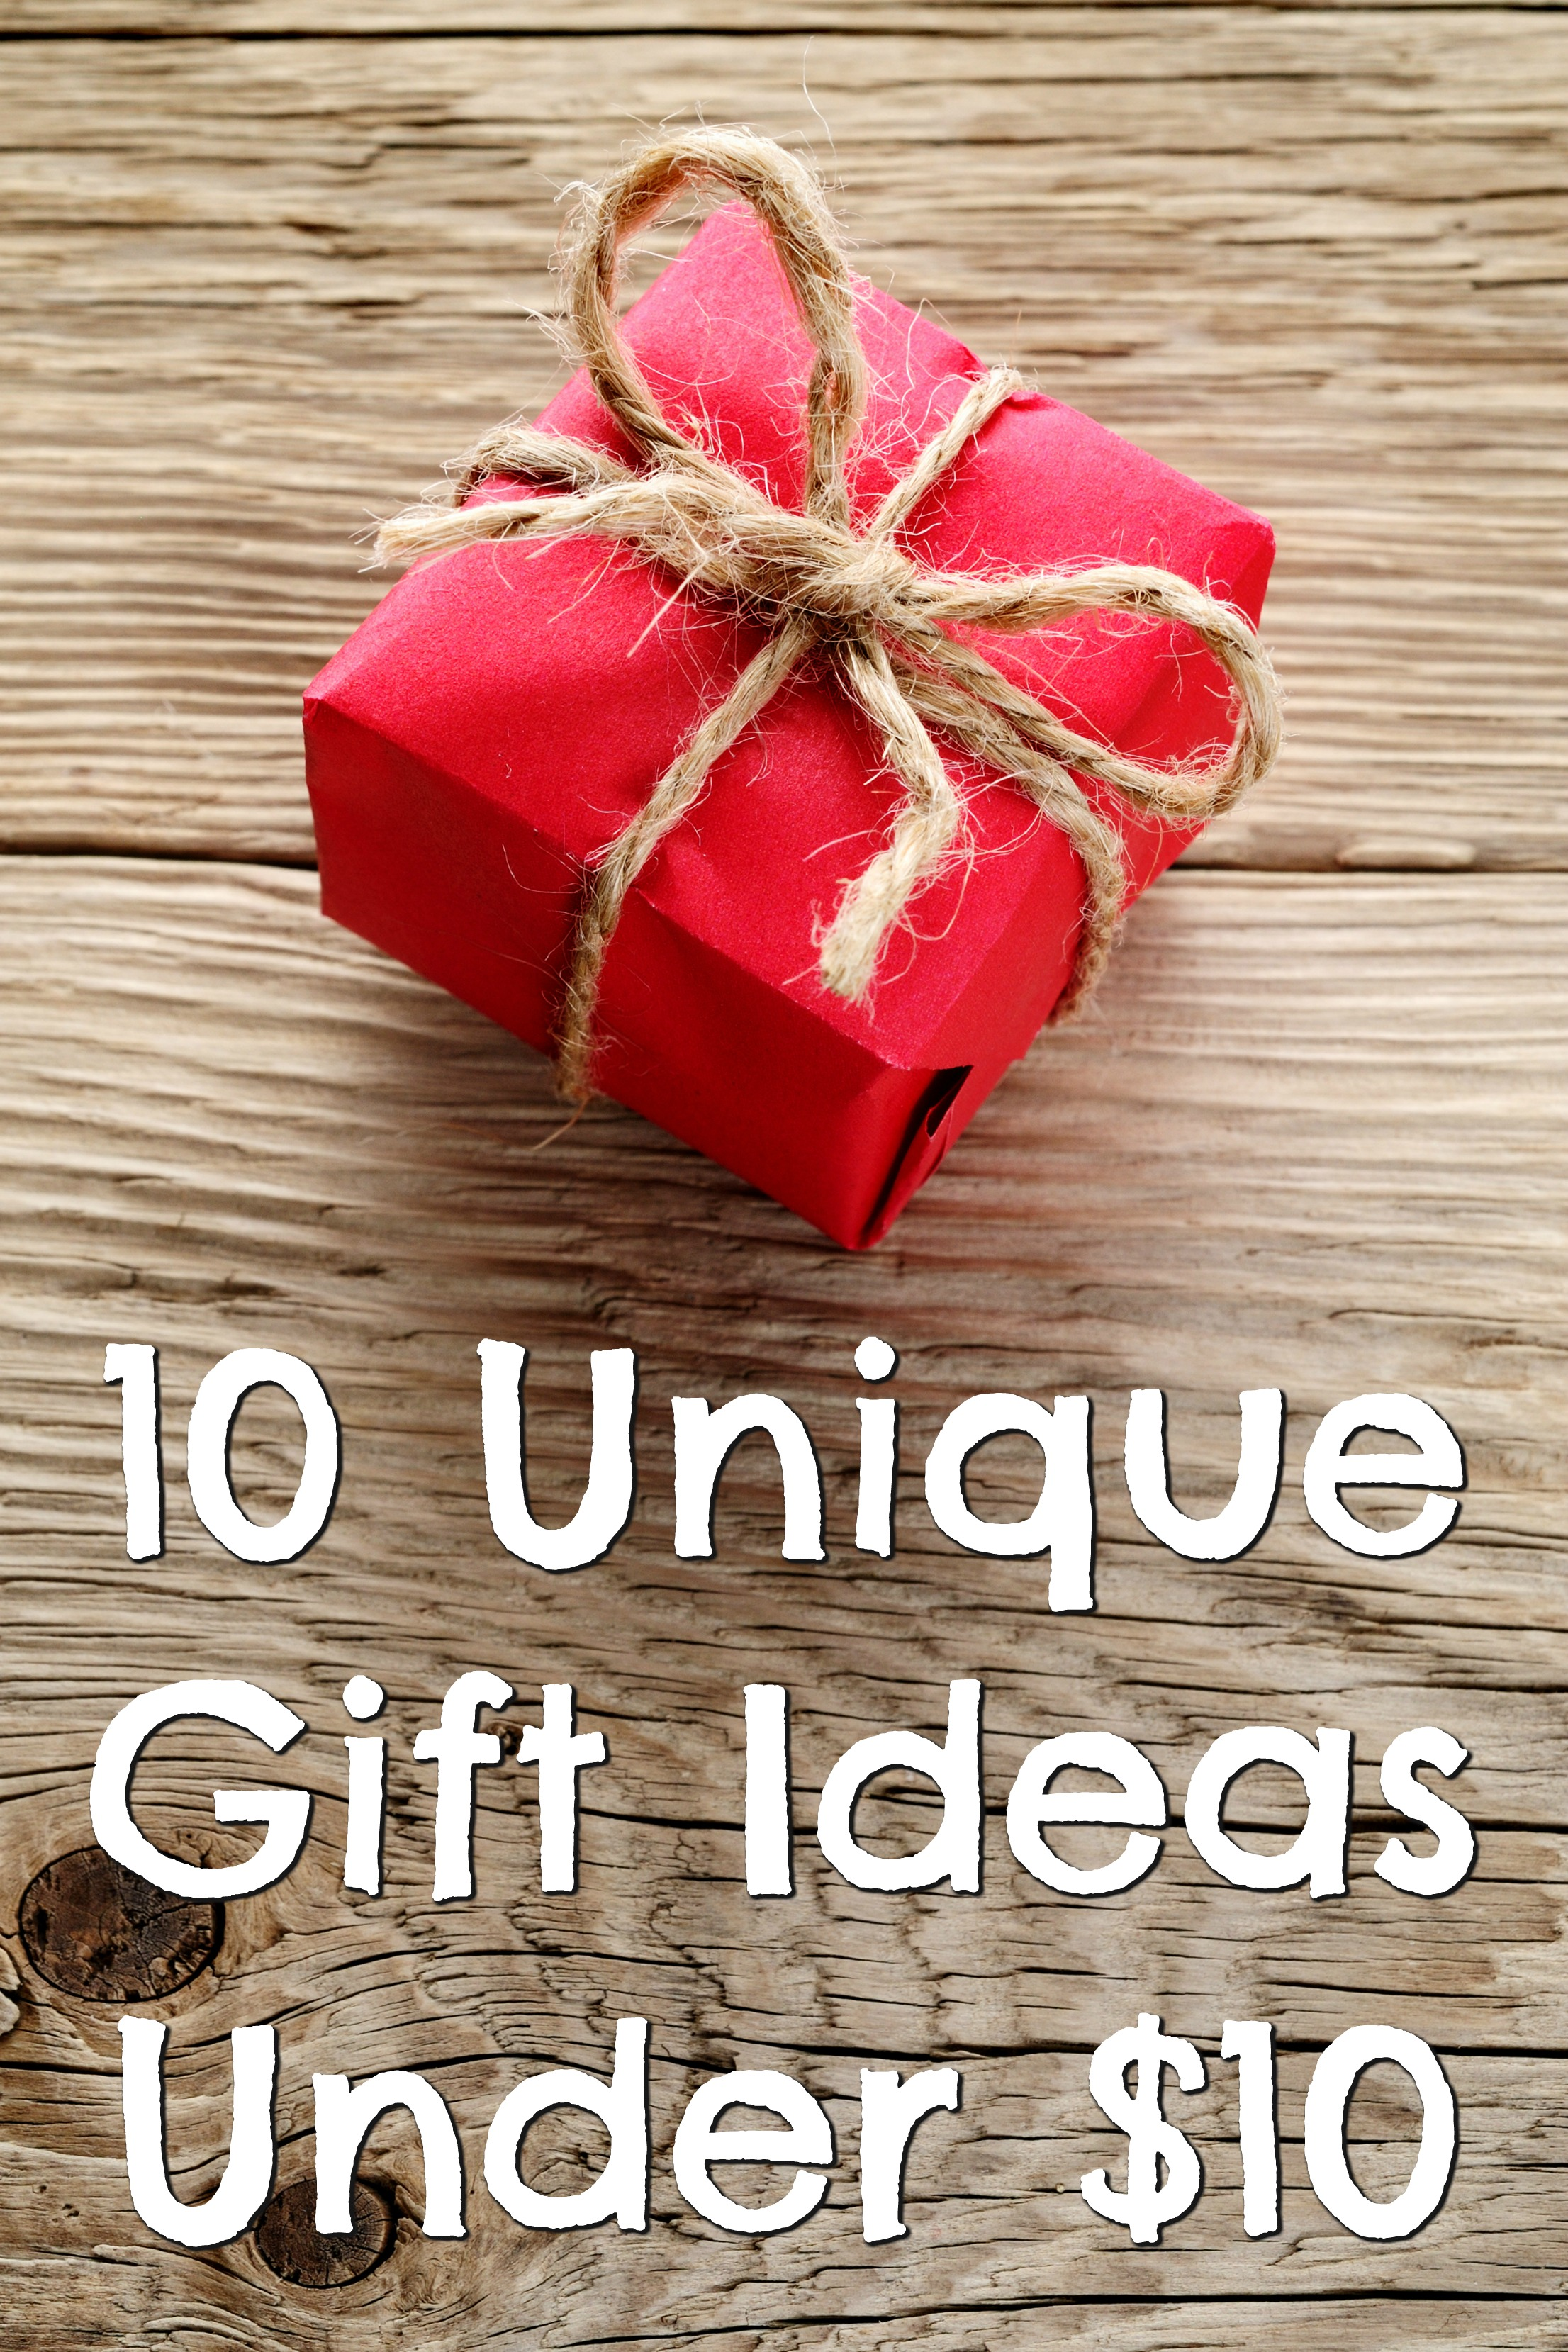 Gifts under 10 dollars for christmas